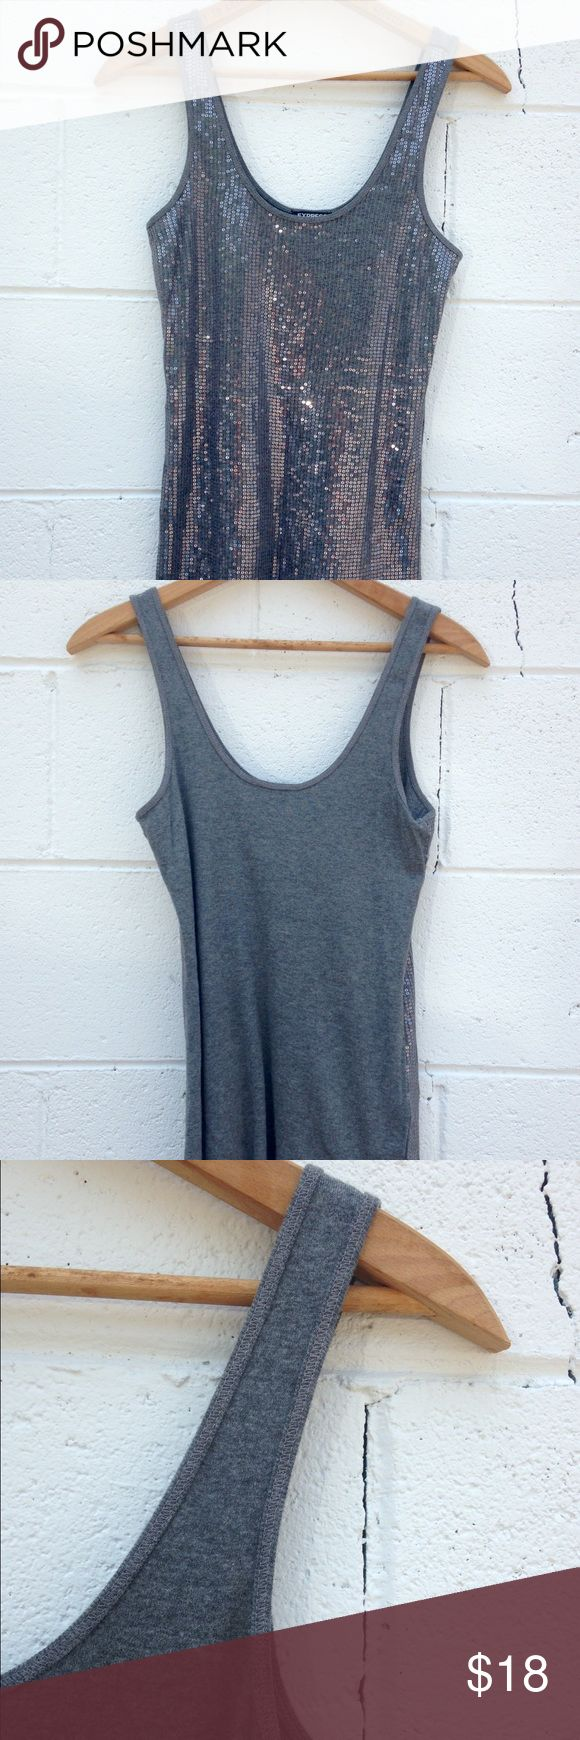 Gray Express Sequence Tank 🐘 X-Long gray tank top with a solid back and sequence on the front. Stretchy material. Paired well with jeans or shorts. Like new condition. Express Tops Tank Tops